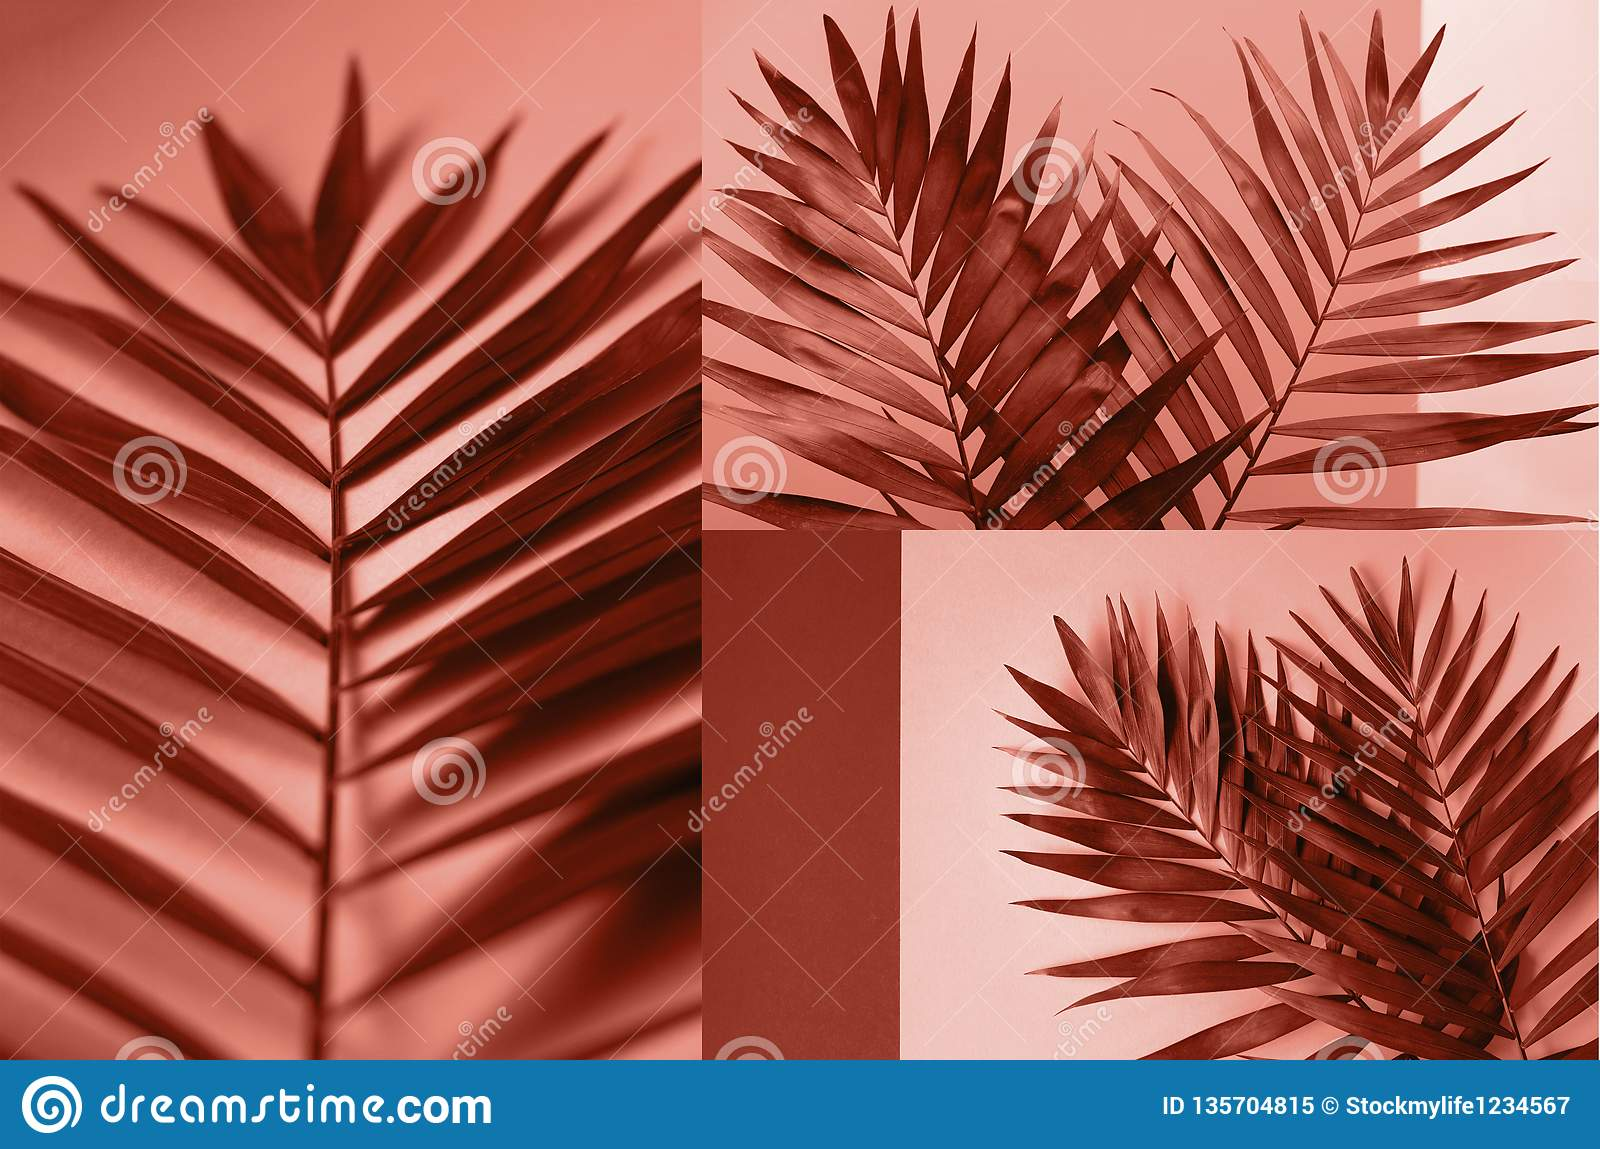 A collage of photos of coral color with palm branches